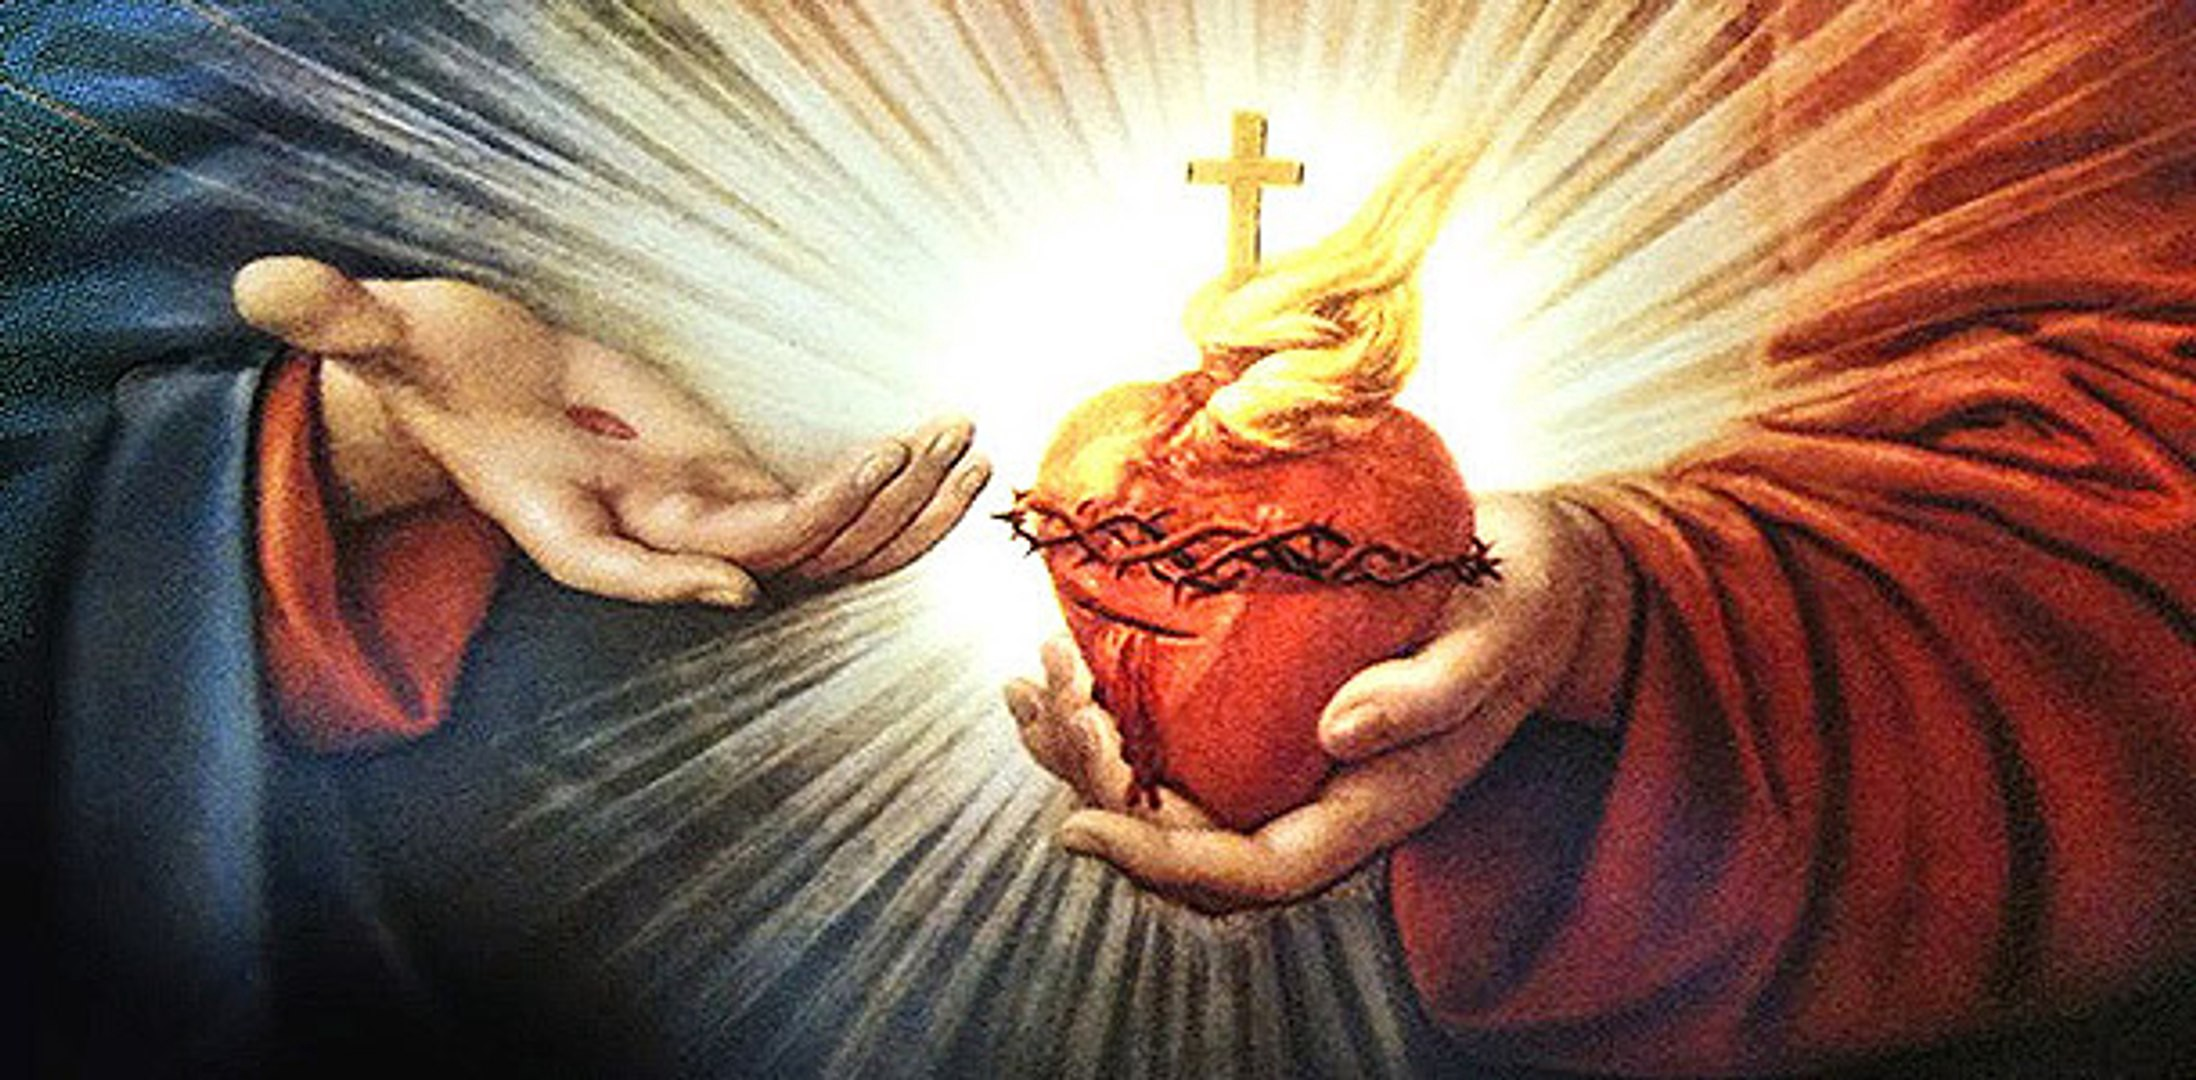 The Most Sacred Heart - Test Everything